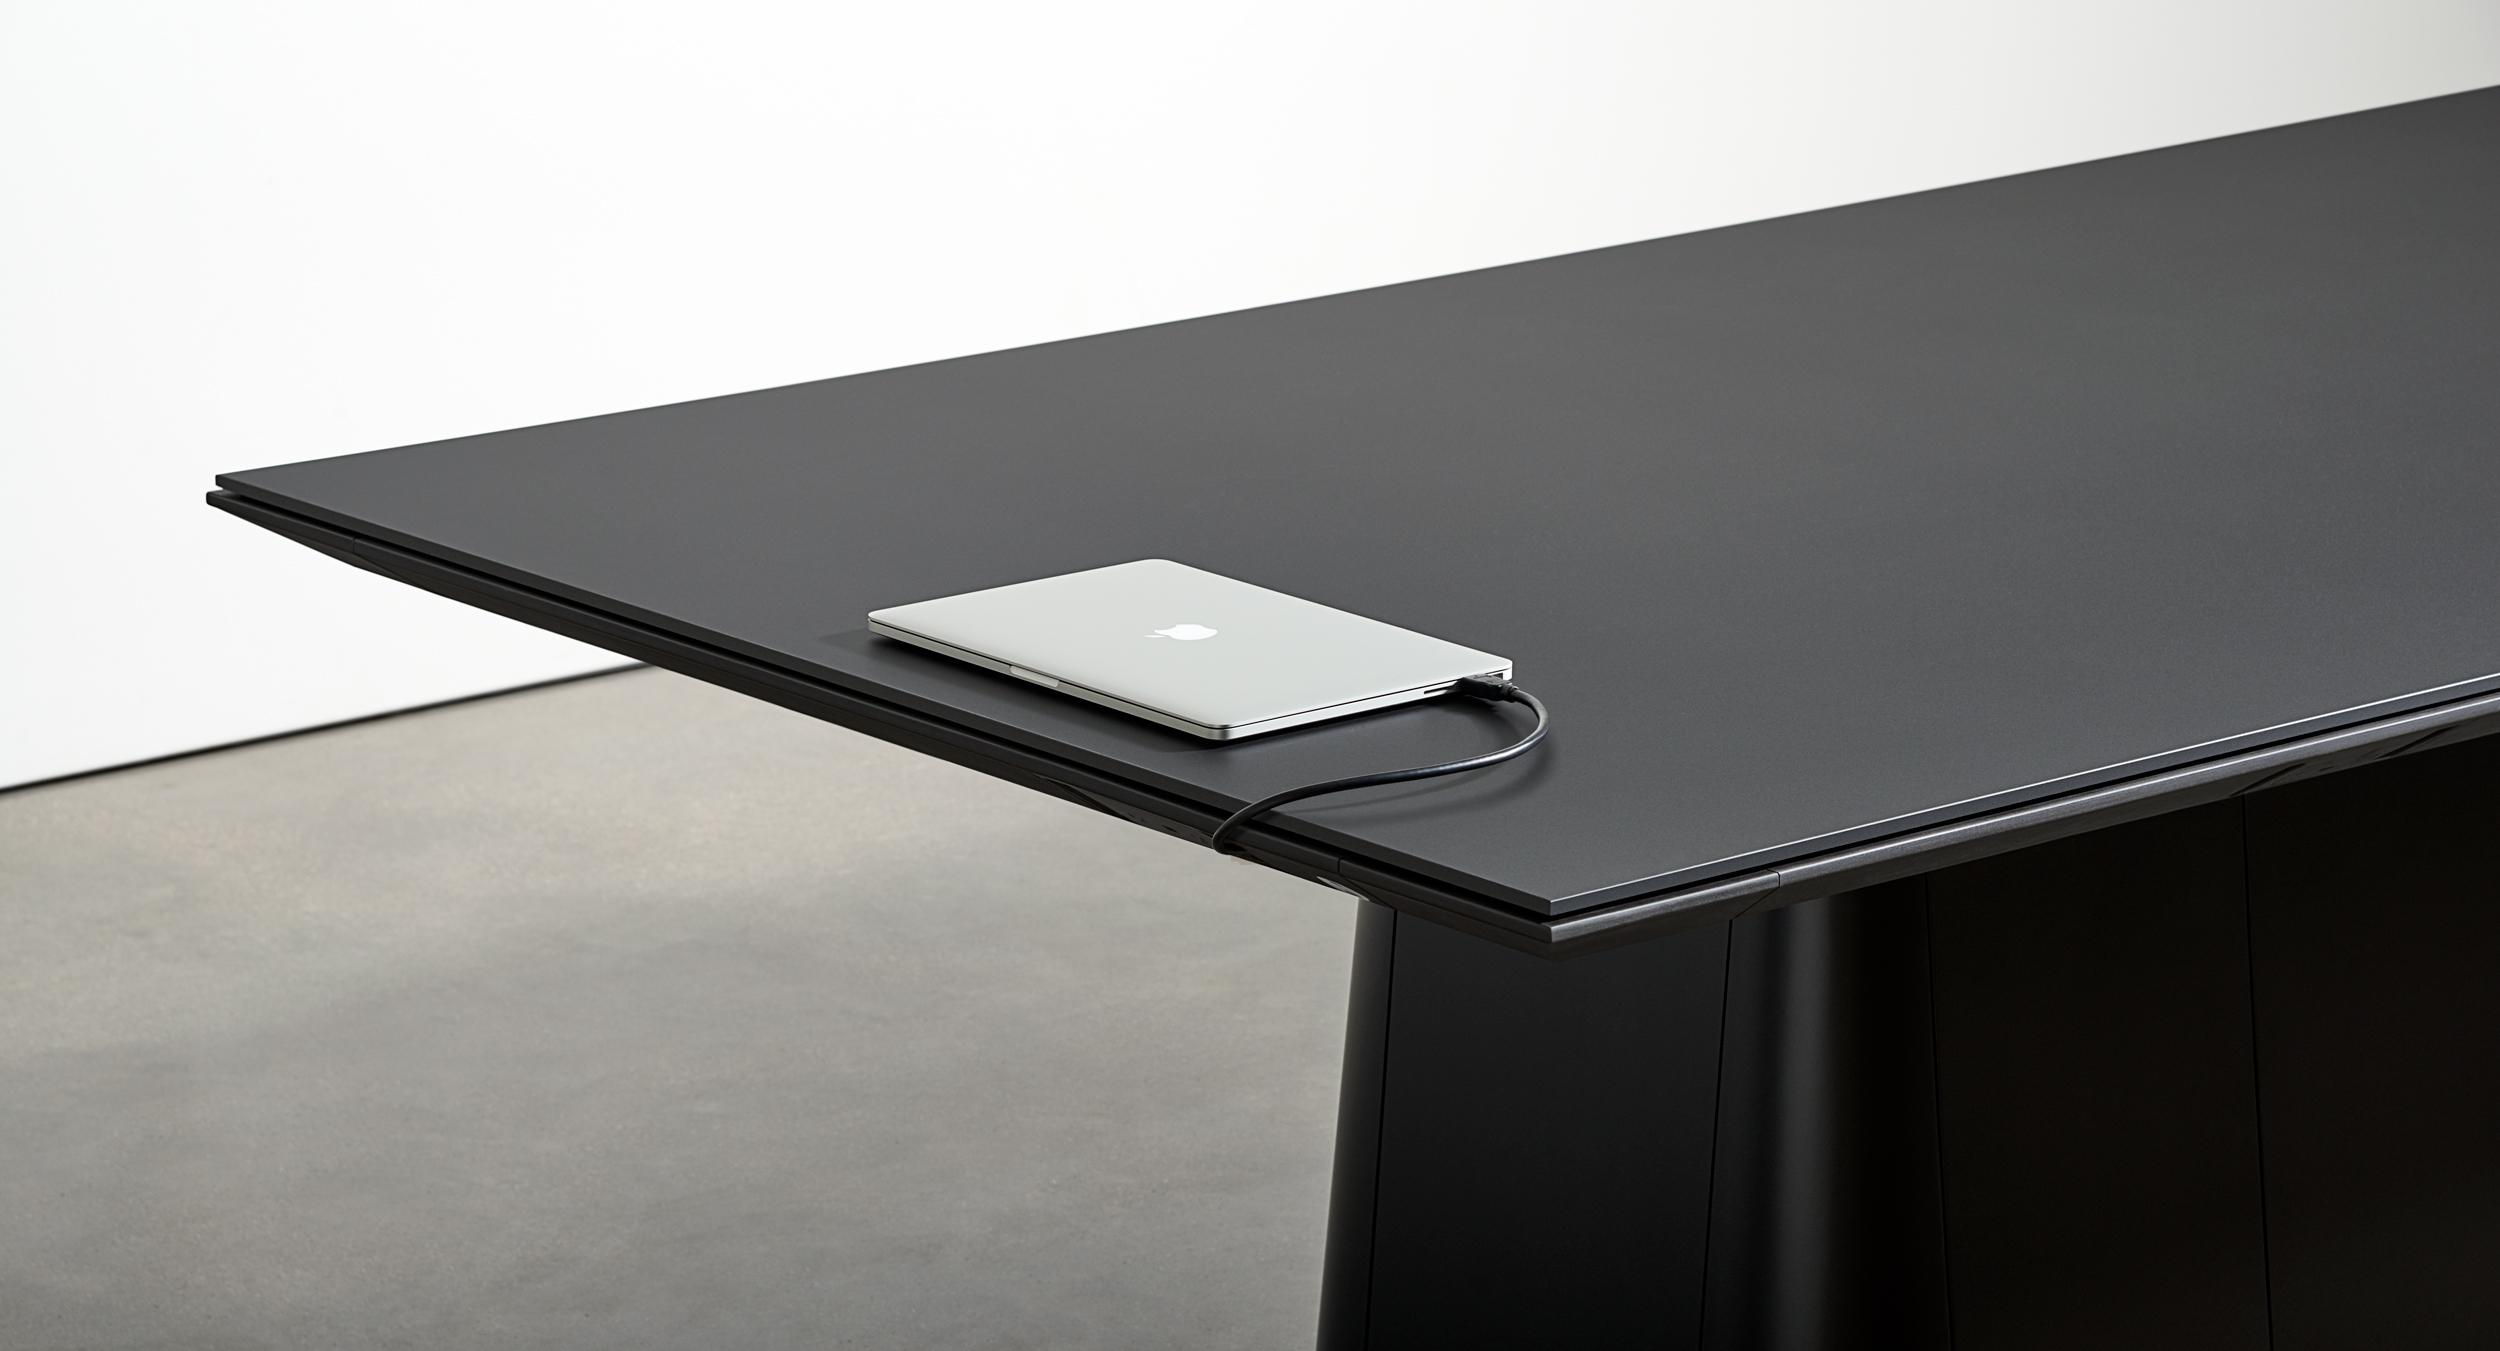 The revolutionary Halo soft edge provides patented protection for table and chair while delivering vital connectivity.